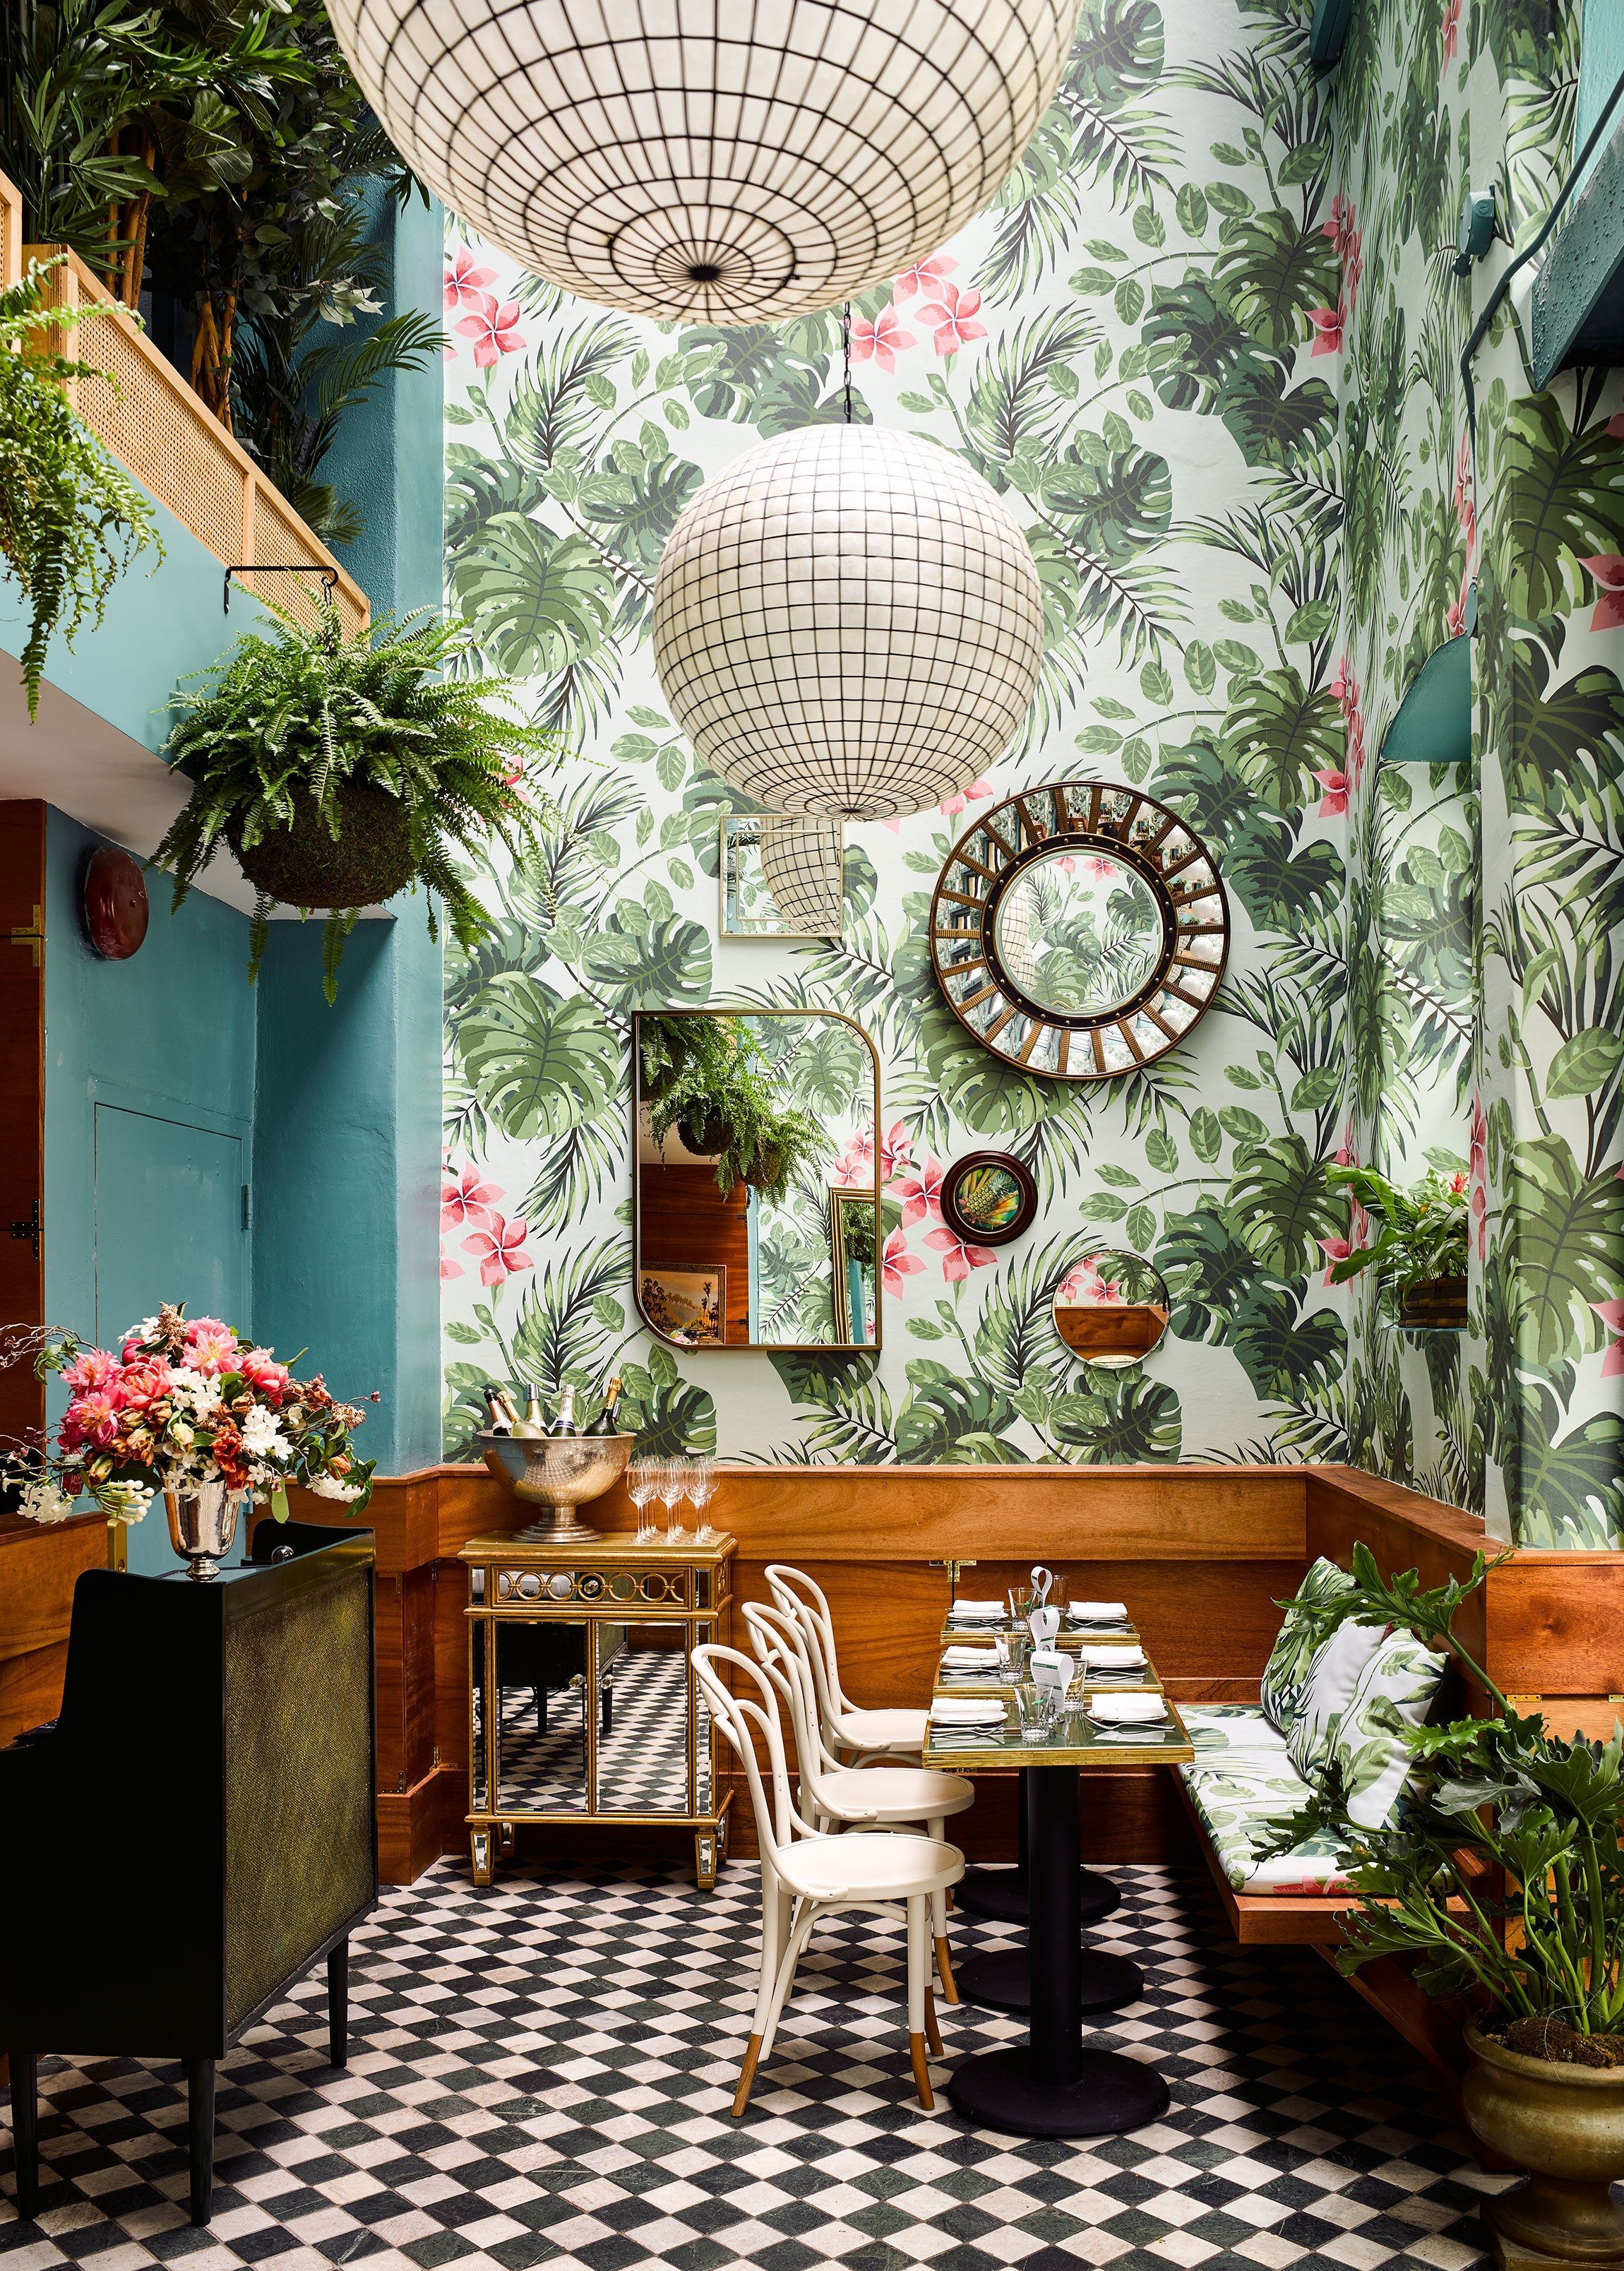 The Golden Era of Glamour Comes Alive at Leo's Oyster Bar   Architectural Digest